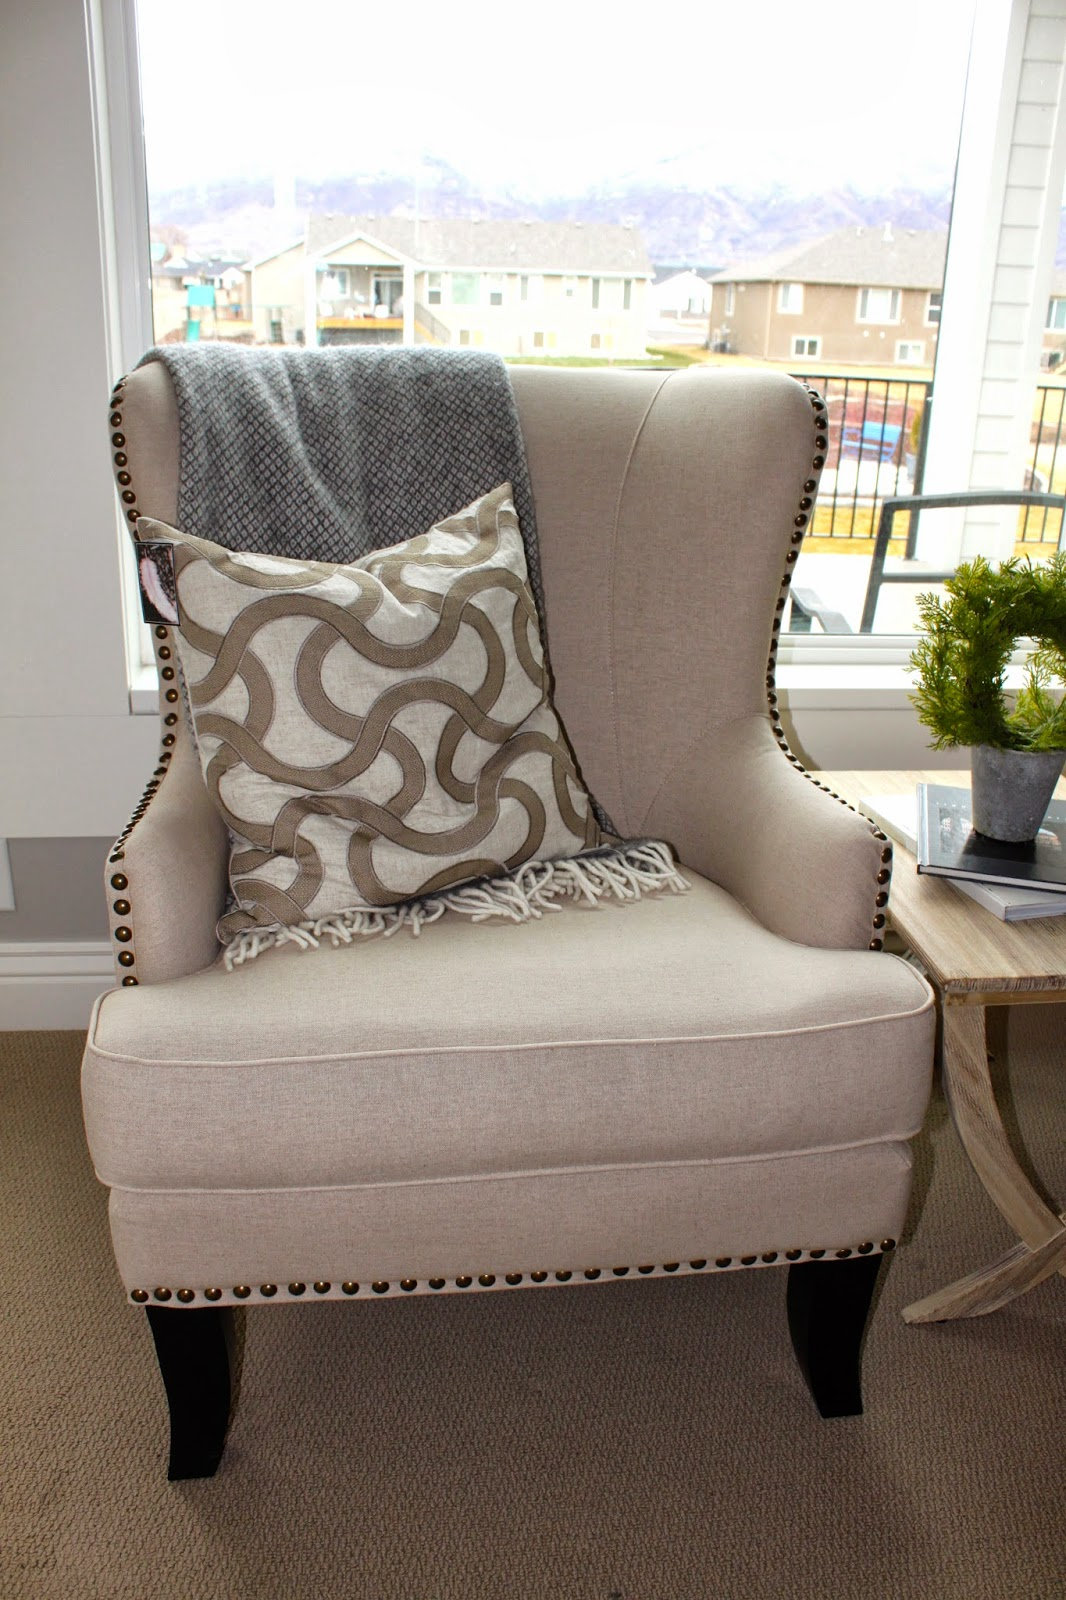 Chair Covers Home Goods Vanity Chairs With Backs Amy 39s Casablanca Living Room